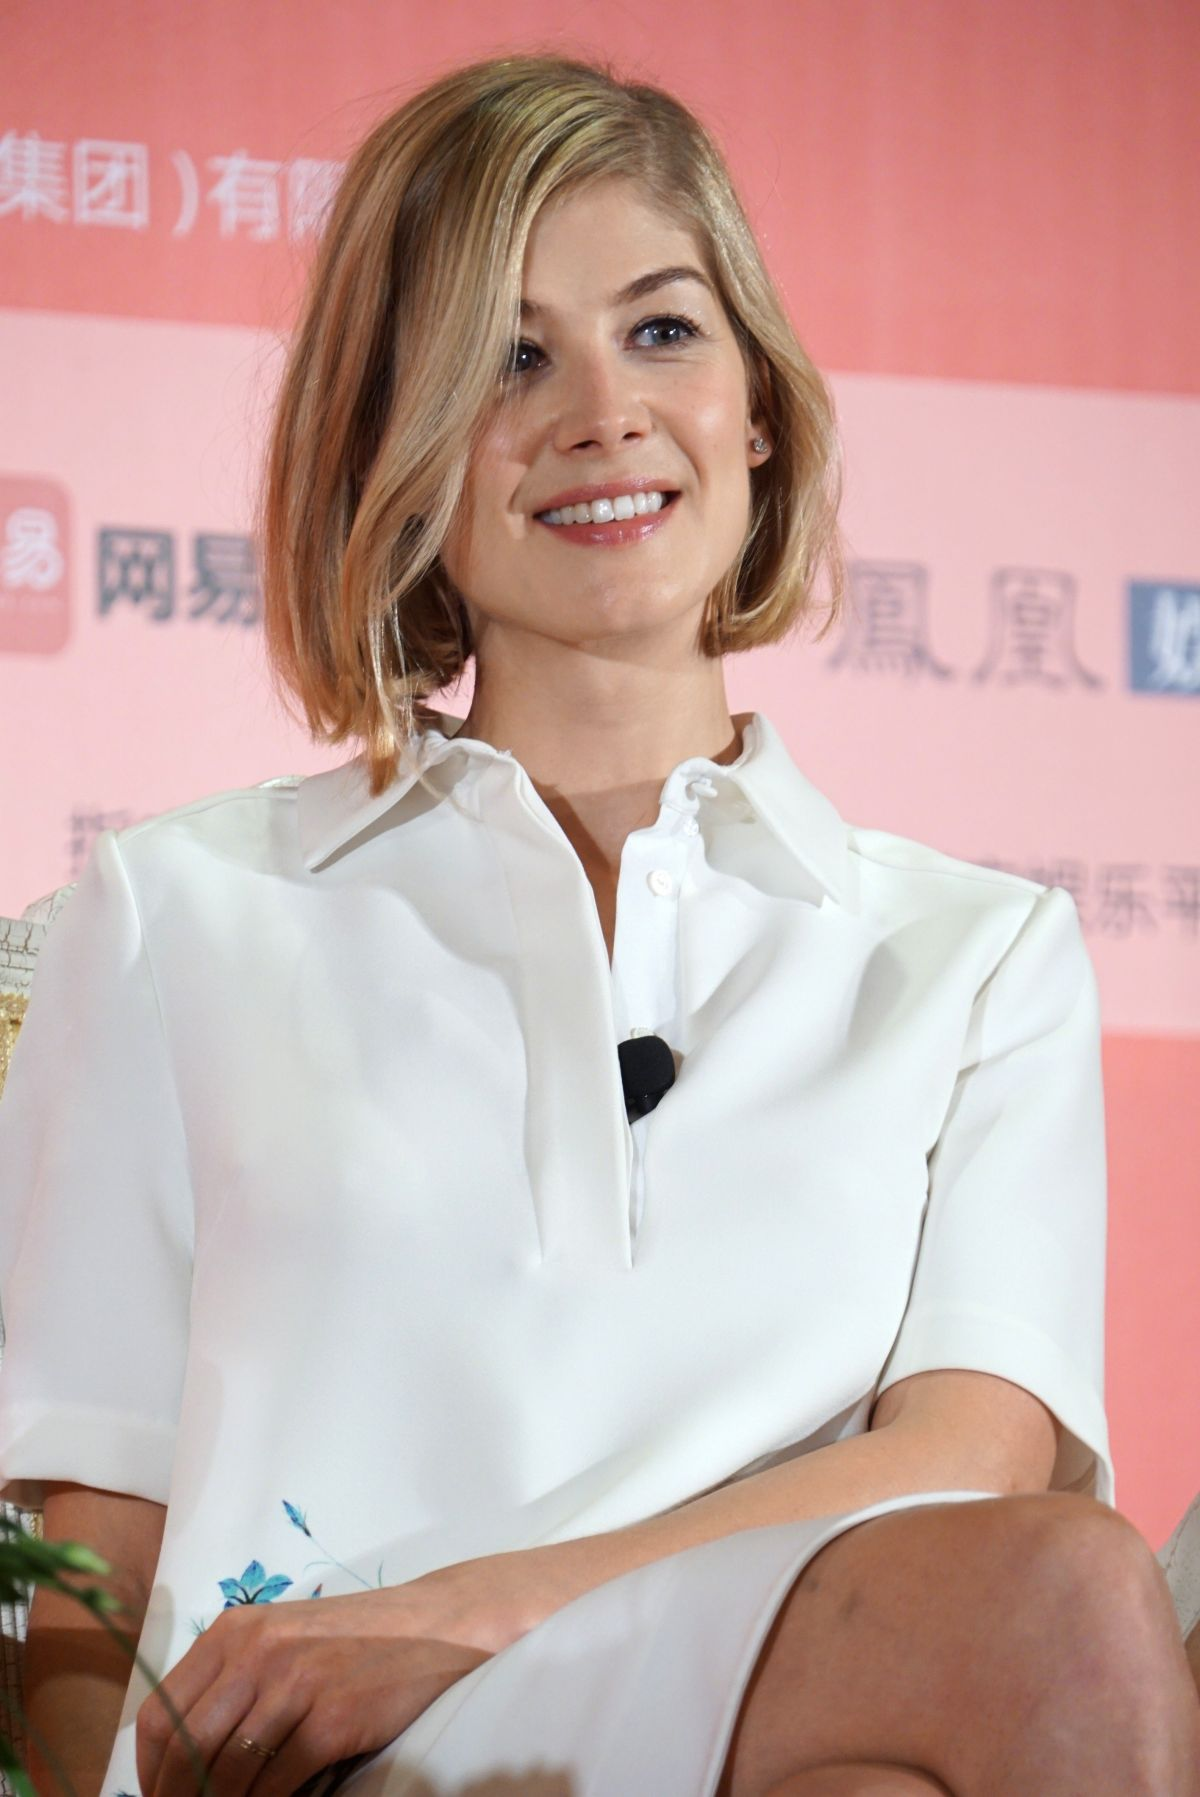 ROSAMUND PIKE at Gone Girl Press Conference in Shanghai ...